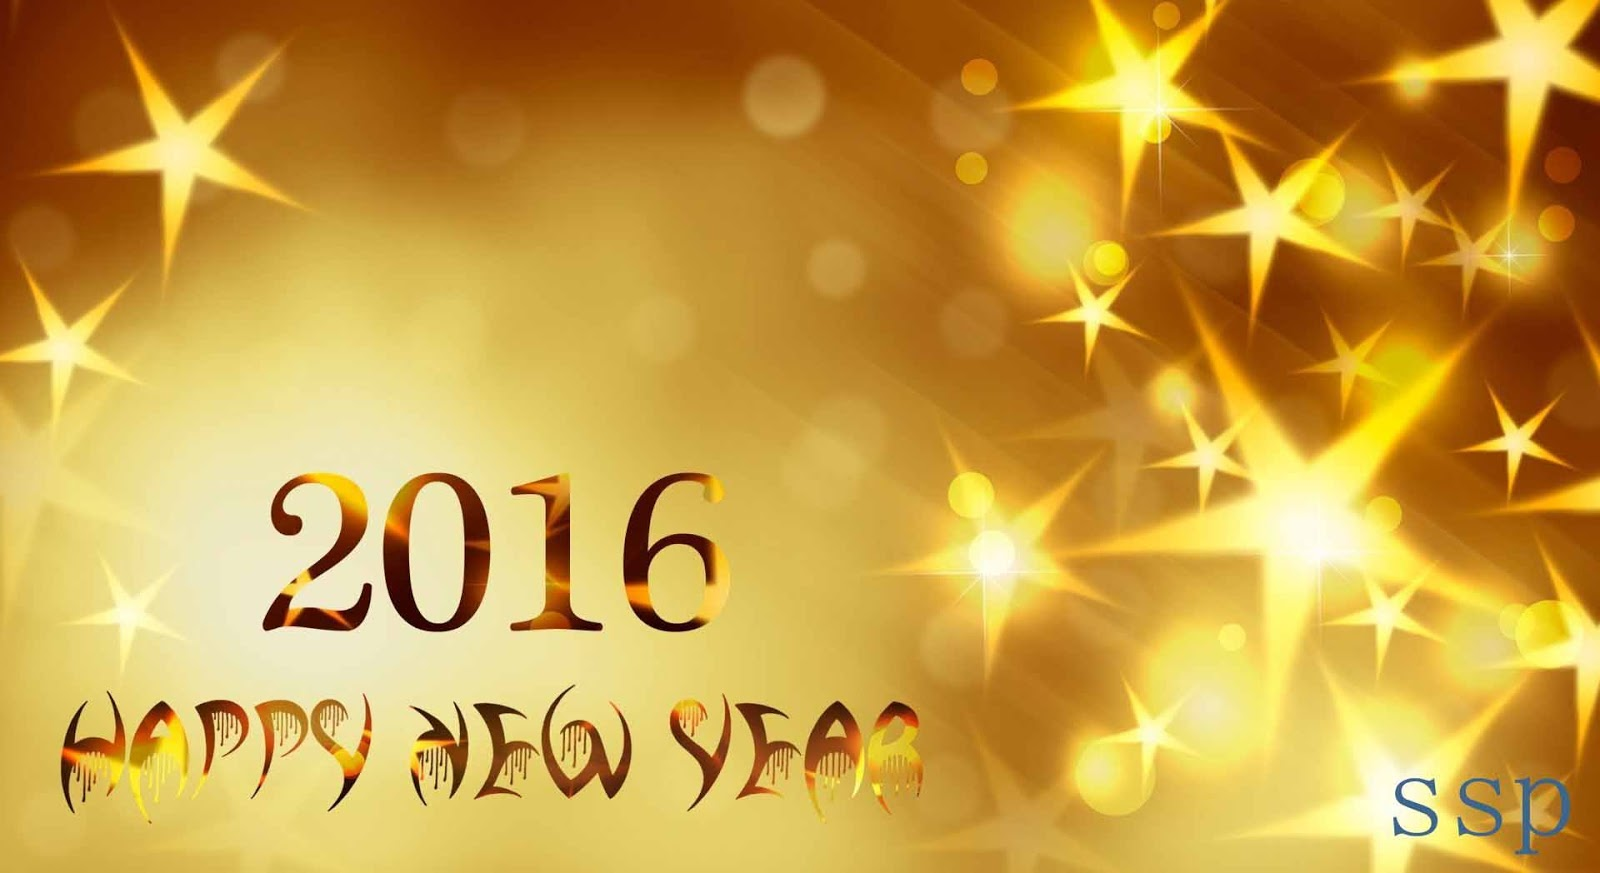 Happy new year 2016 sms images happy new year 2016 images facebookwhatsapp kristyandbryce Gallery